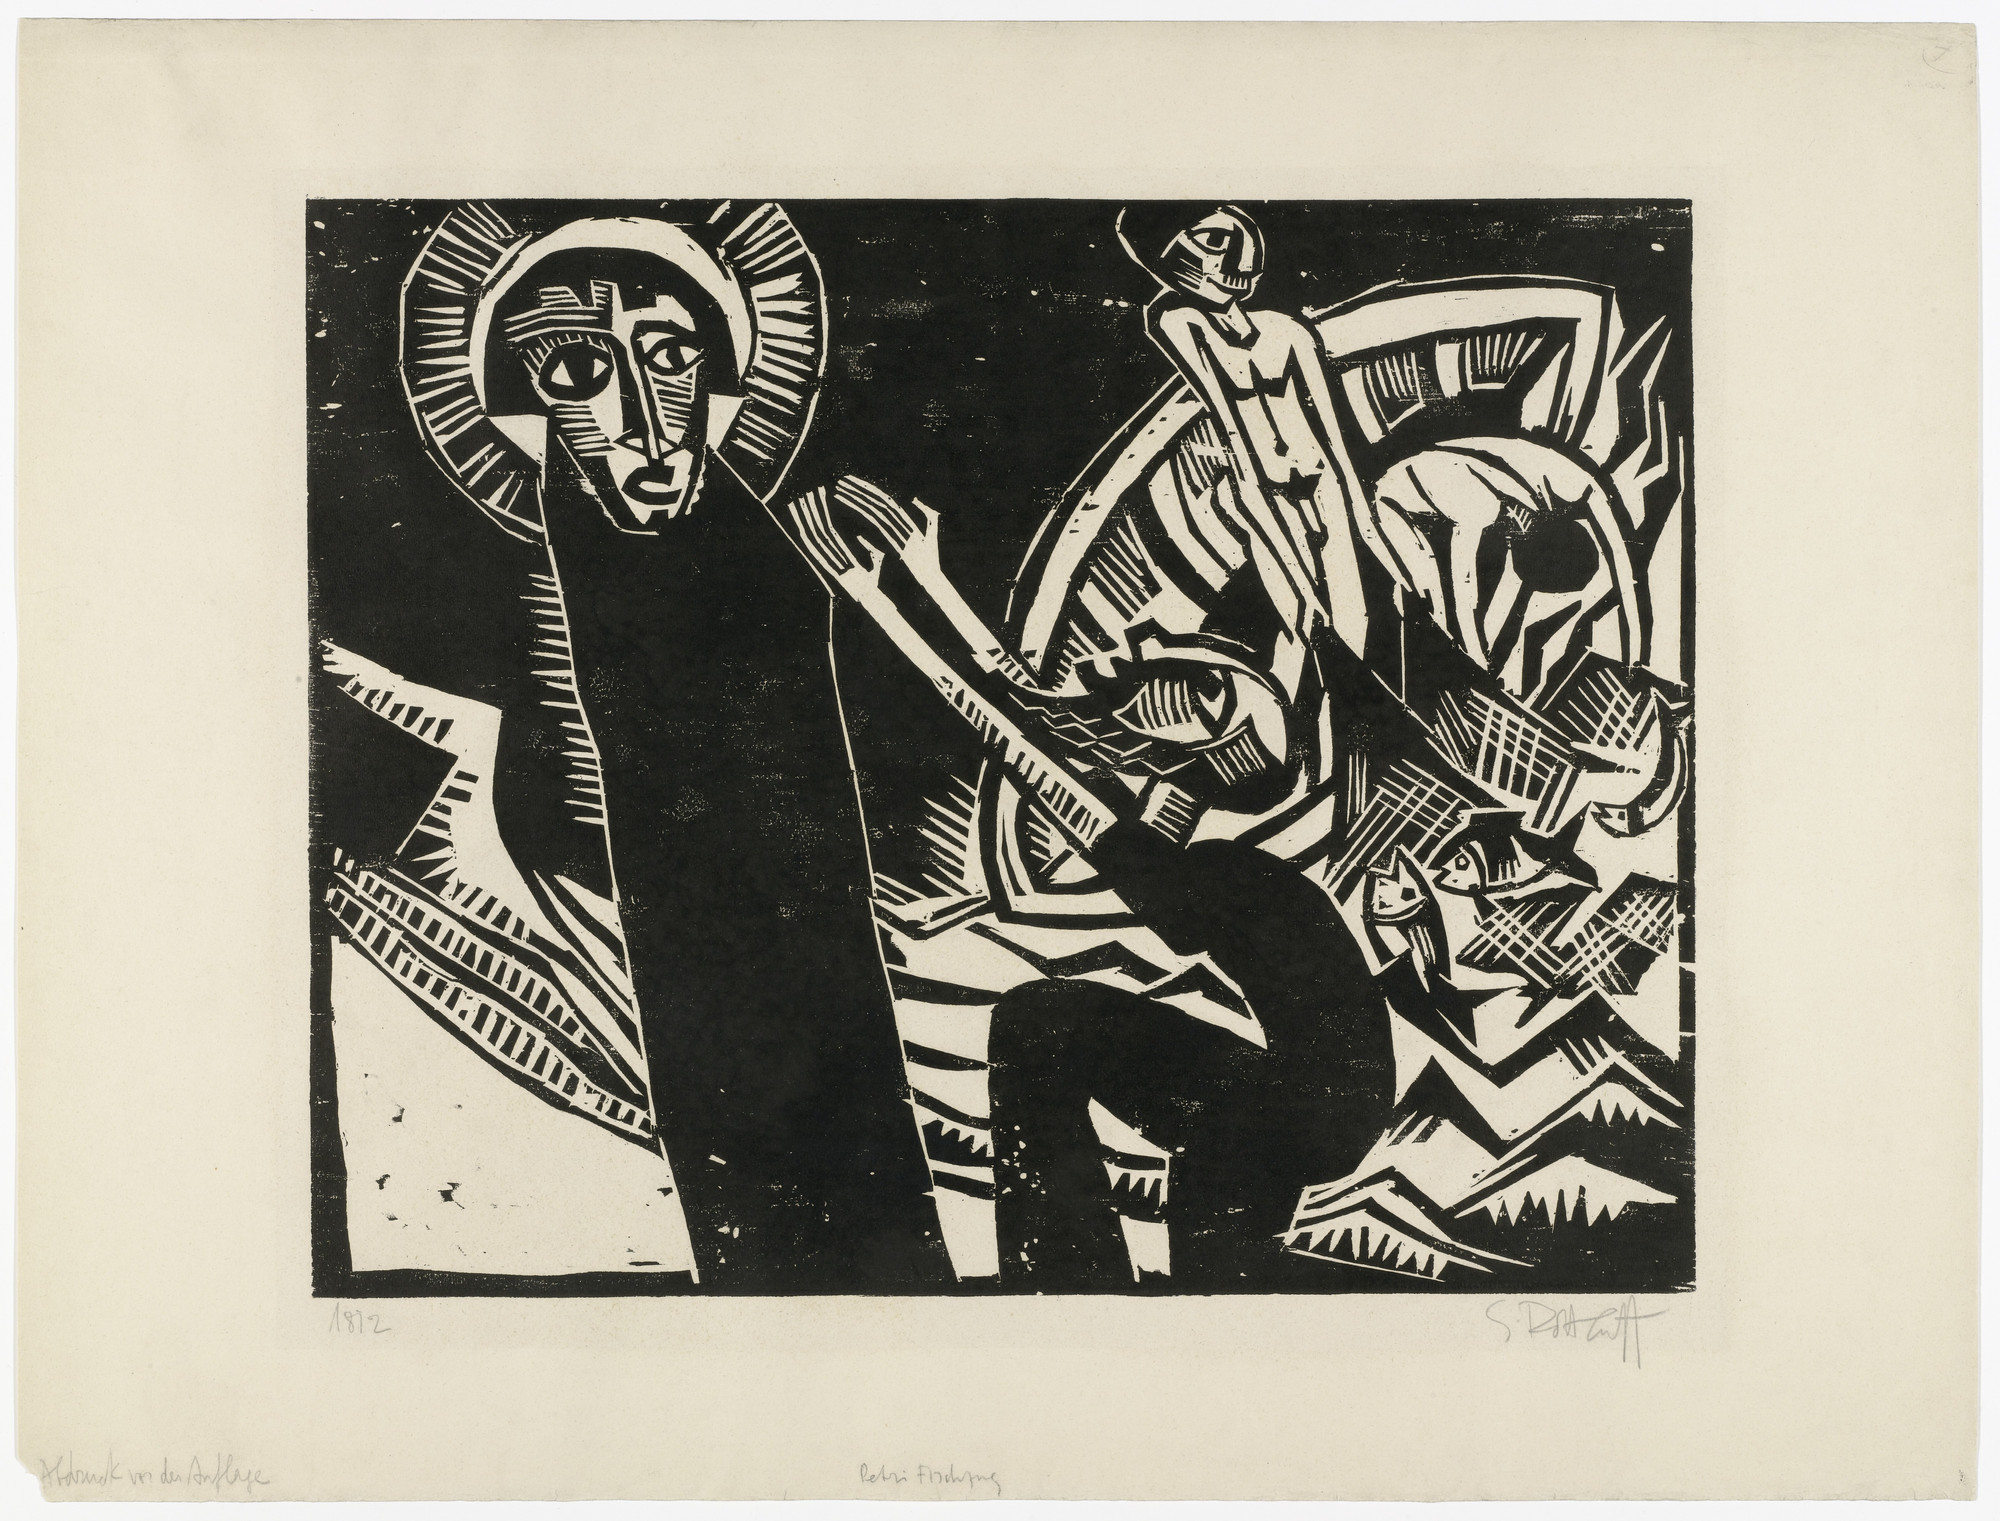 Karl Schmidt-Rottluff. The Miraculous Draught of Fishes (Petri Fischzug) from the portfolio 9 Woodcuts by Schmidt-Rottluff (9 Holzschnitte von Schmidt-Rottluff). 1918